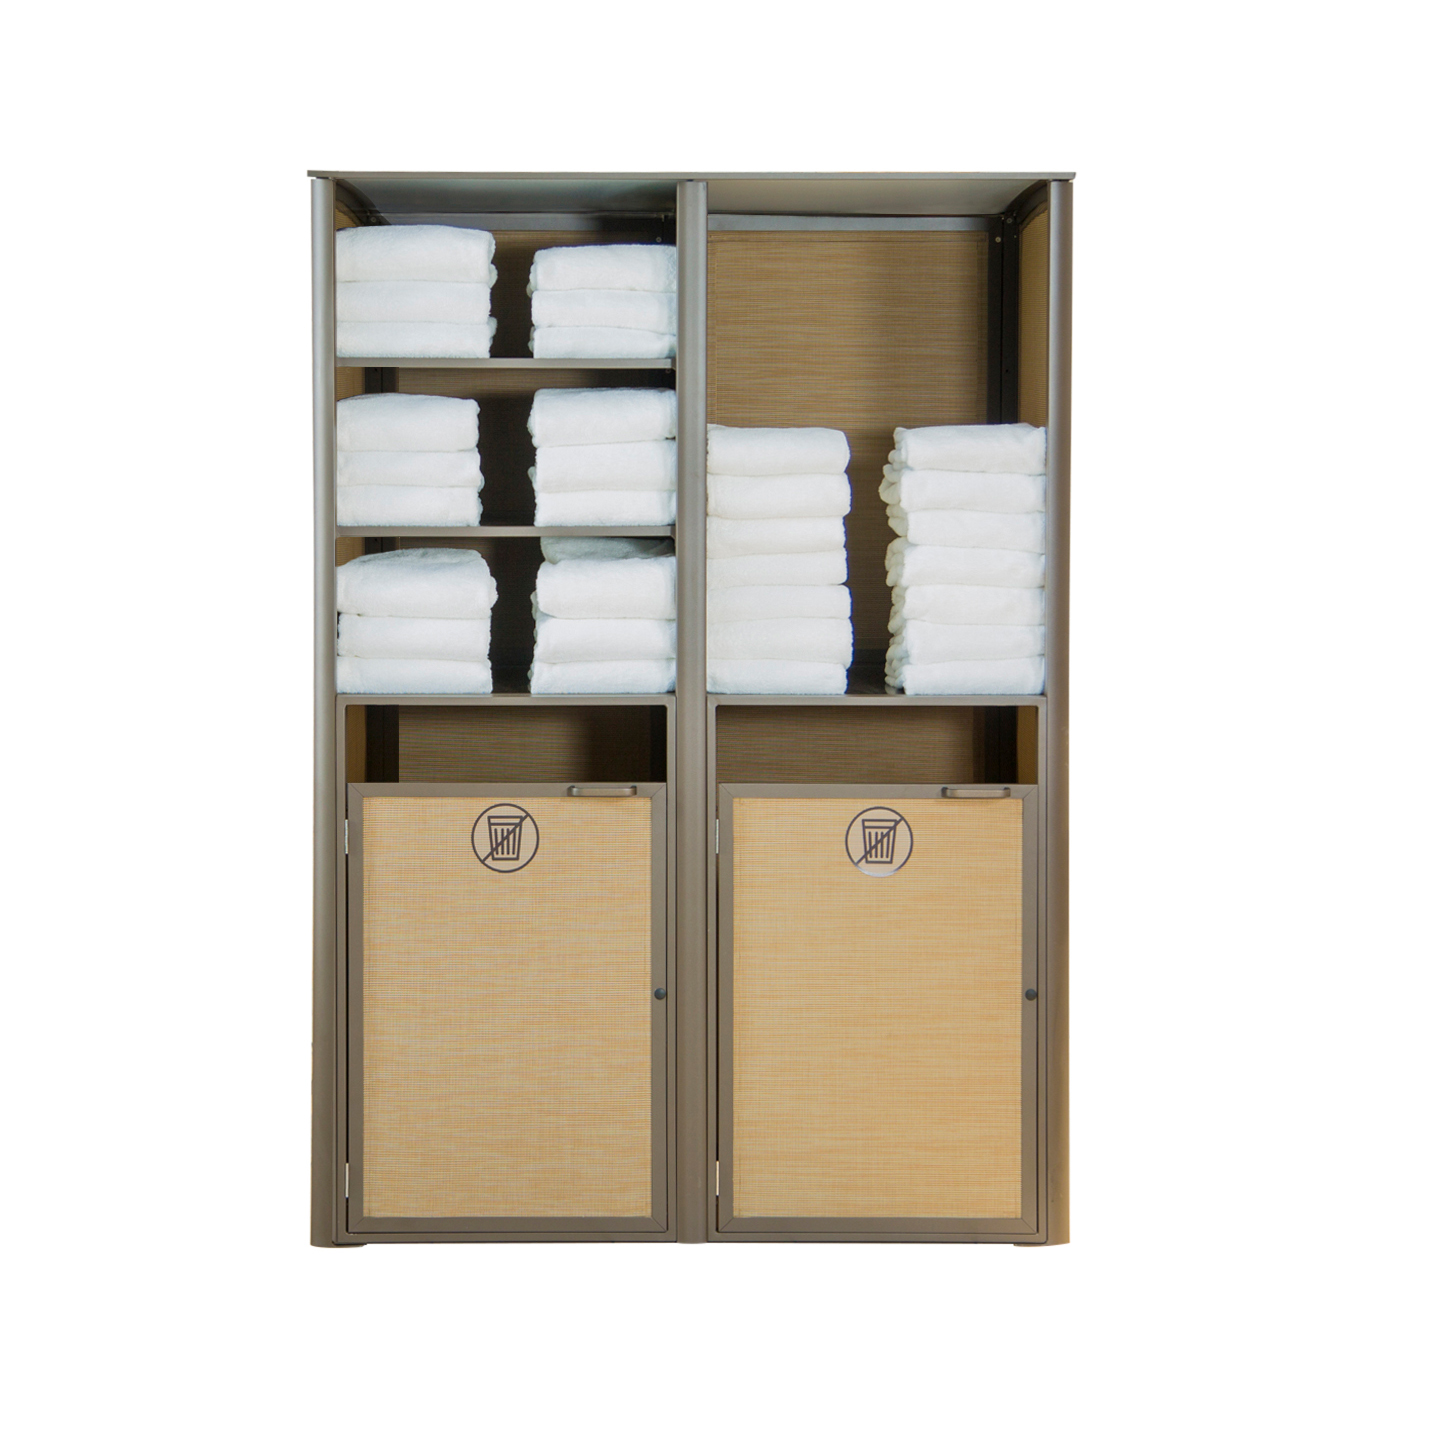 Grosfillex US173289 laundry housekeeping cabinet